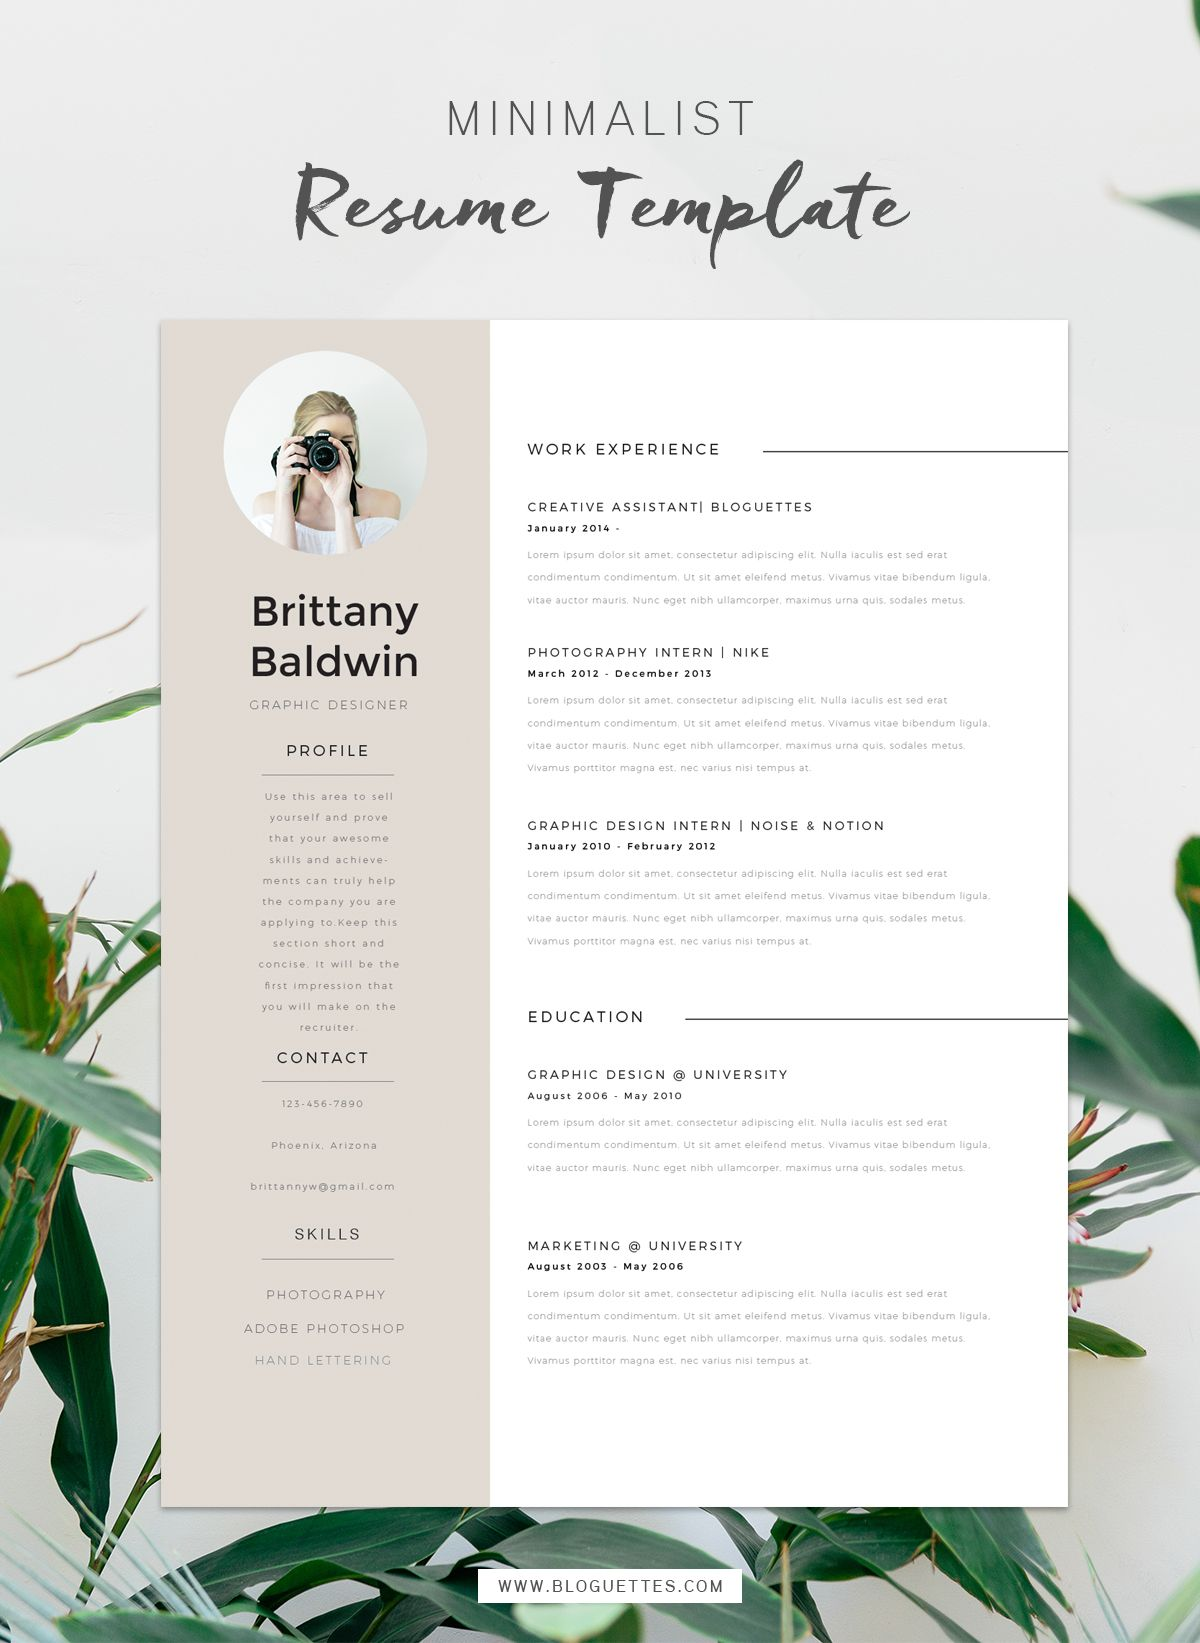 Resume Professional Skills Resume Template  Brittany  Pinterest  Template Blogging And Business